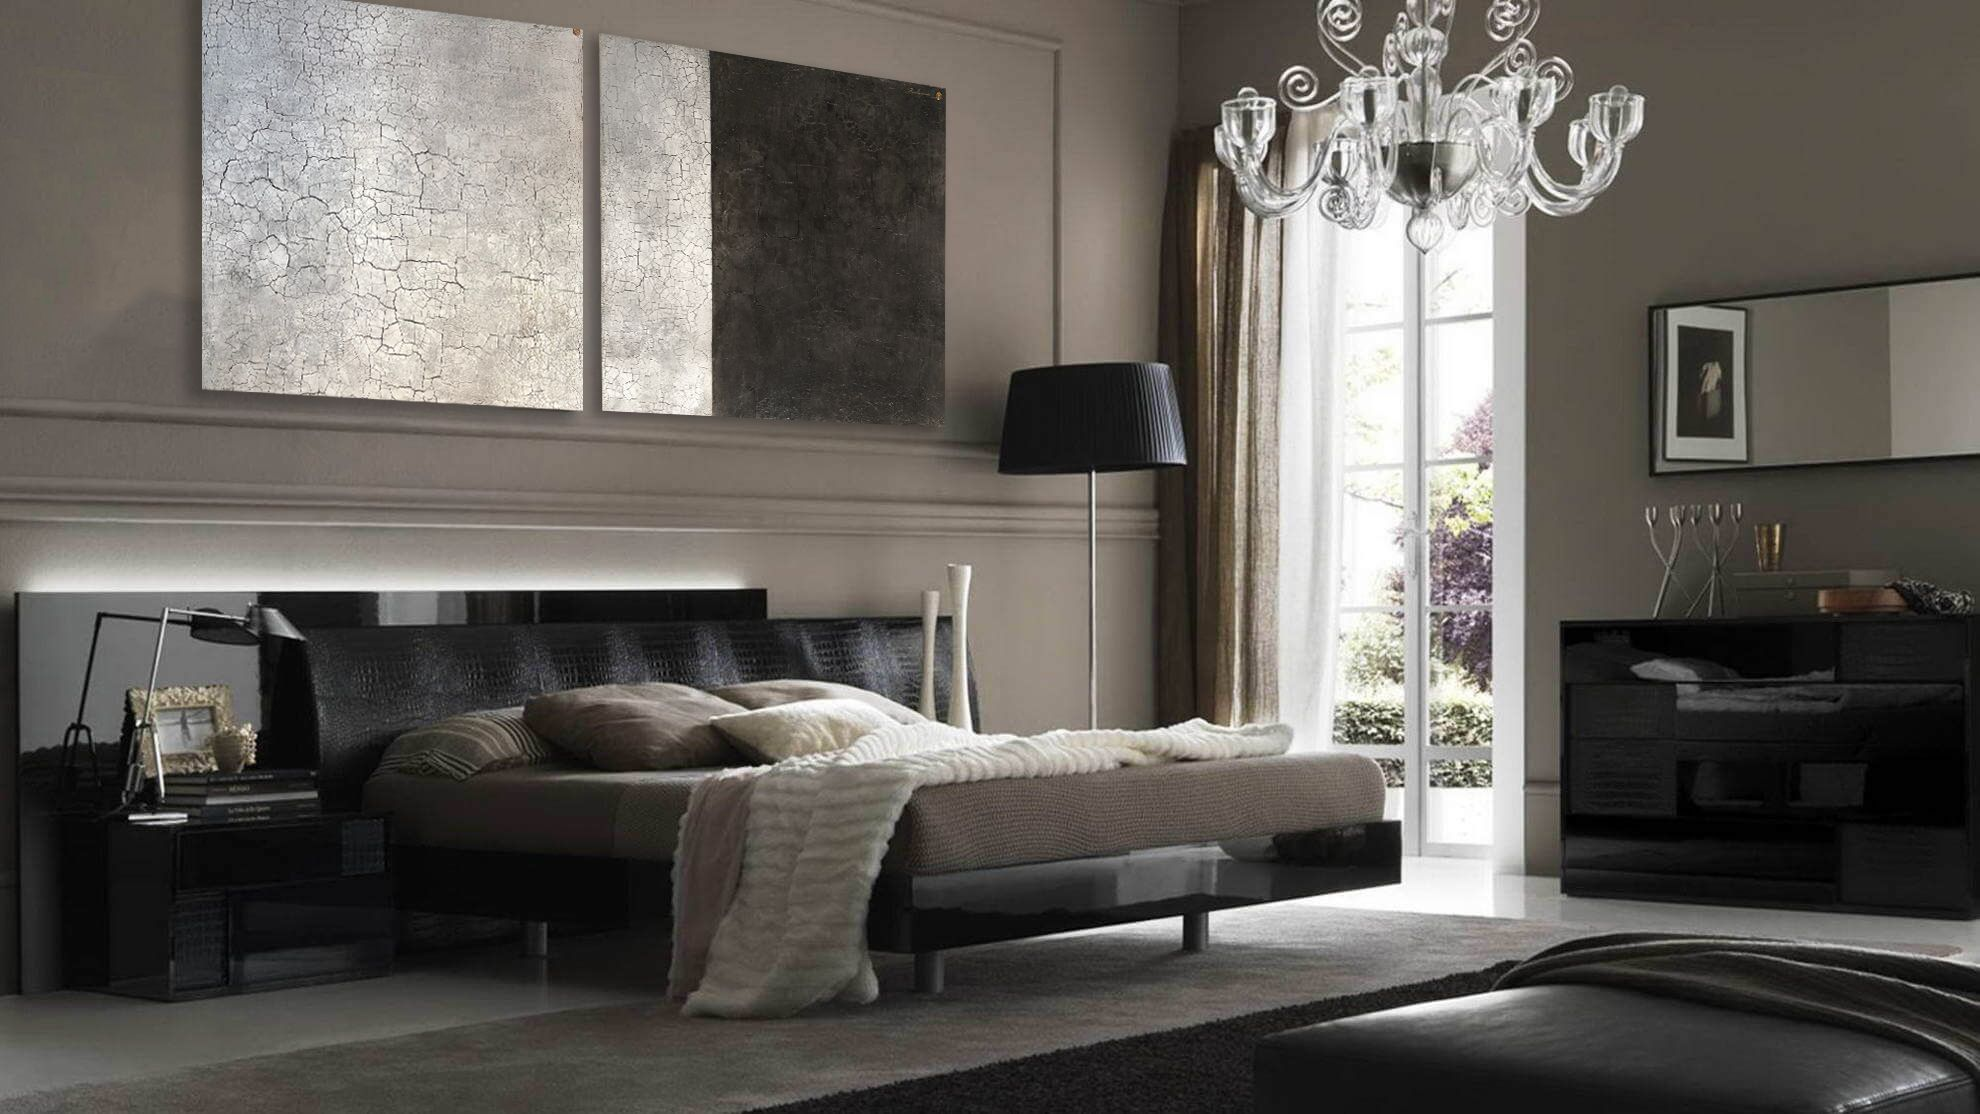 48 Cute Ladies Bed Room Concepts For Small Rooms 48 Bedroomideas